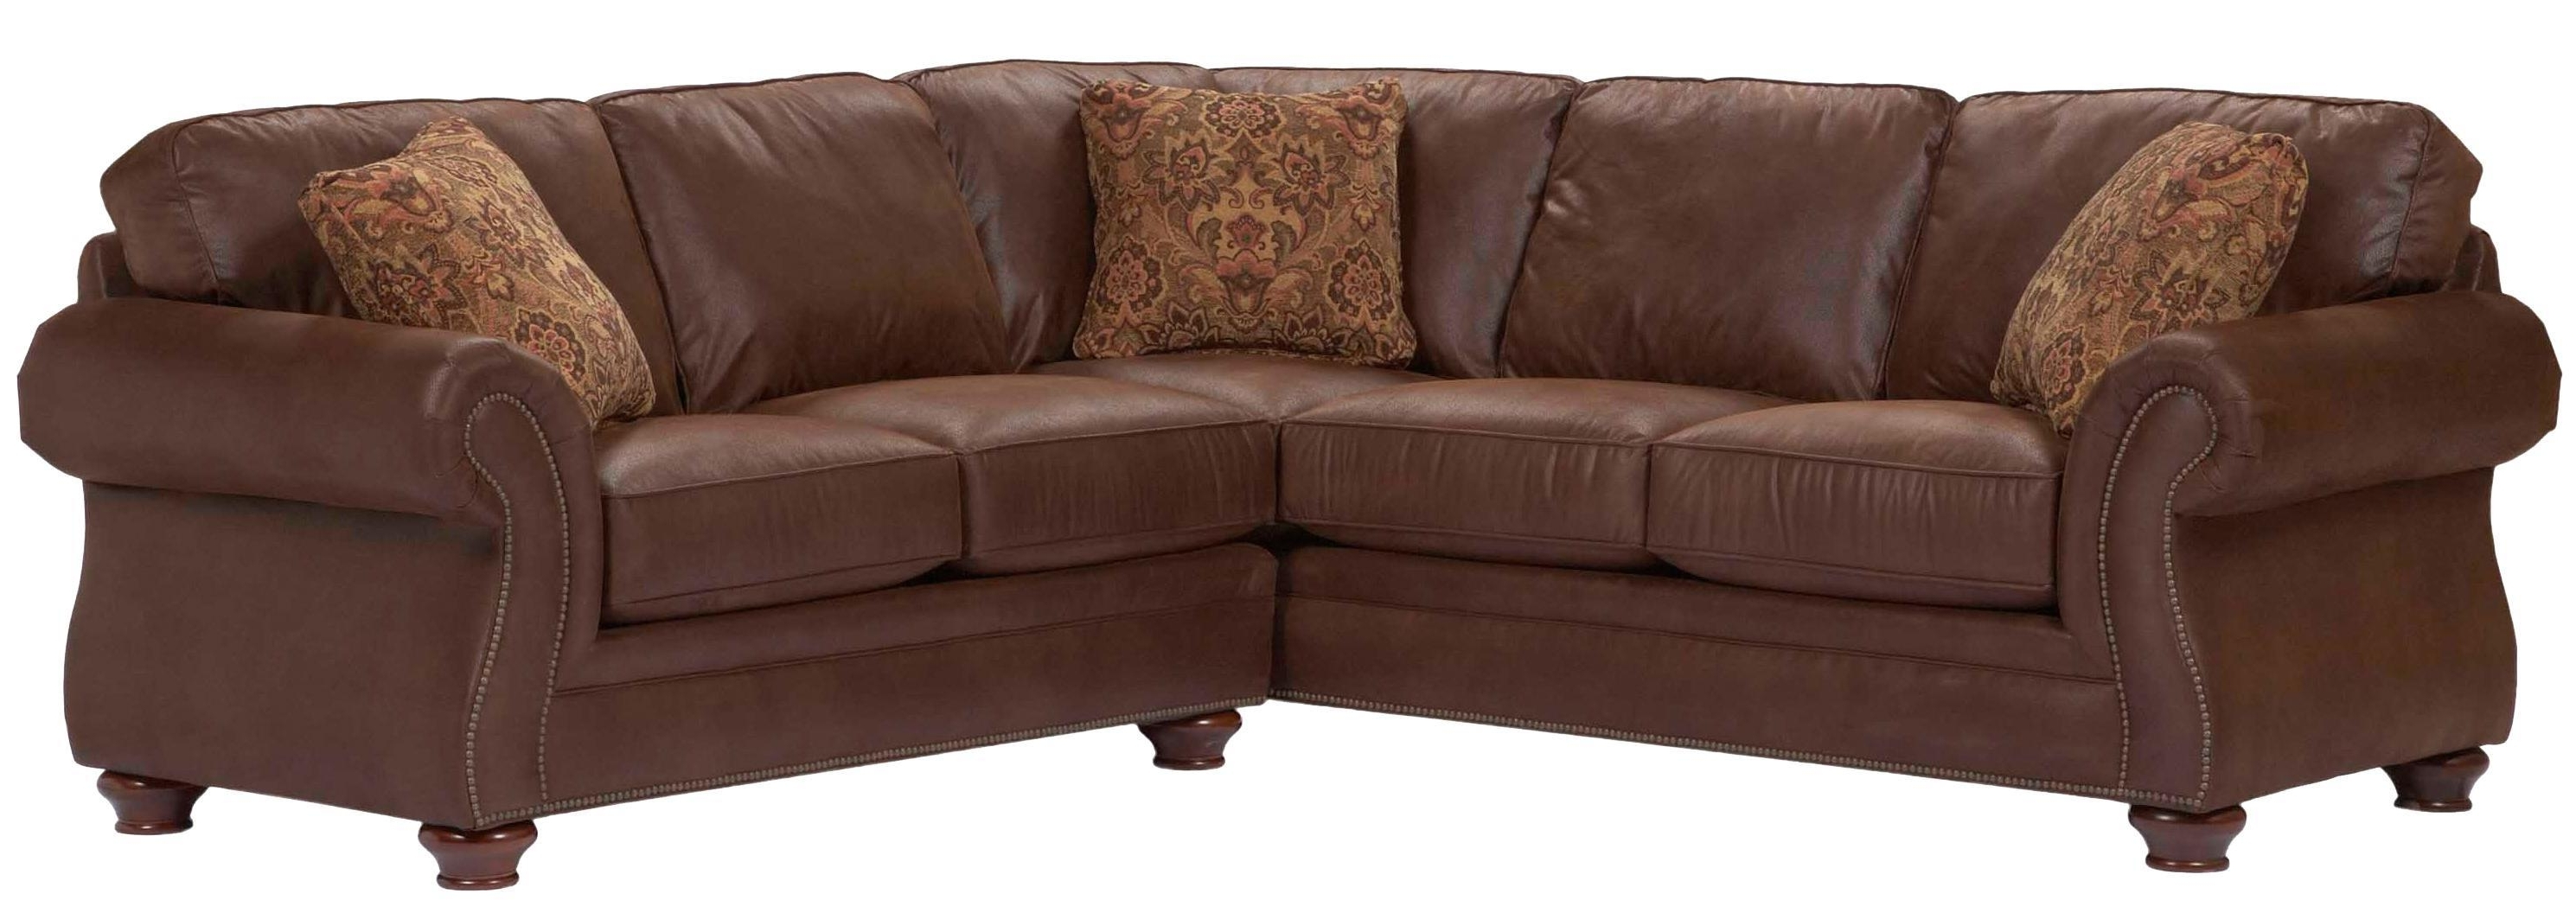 Well Liked El Paso Texas Sectional Sofas Throughout Broyhill Furniture Laramie 2 Piece Corner Sectional Sofa – Ahfa (View 19 of 20)